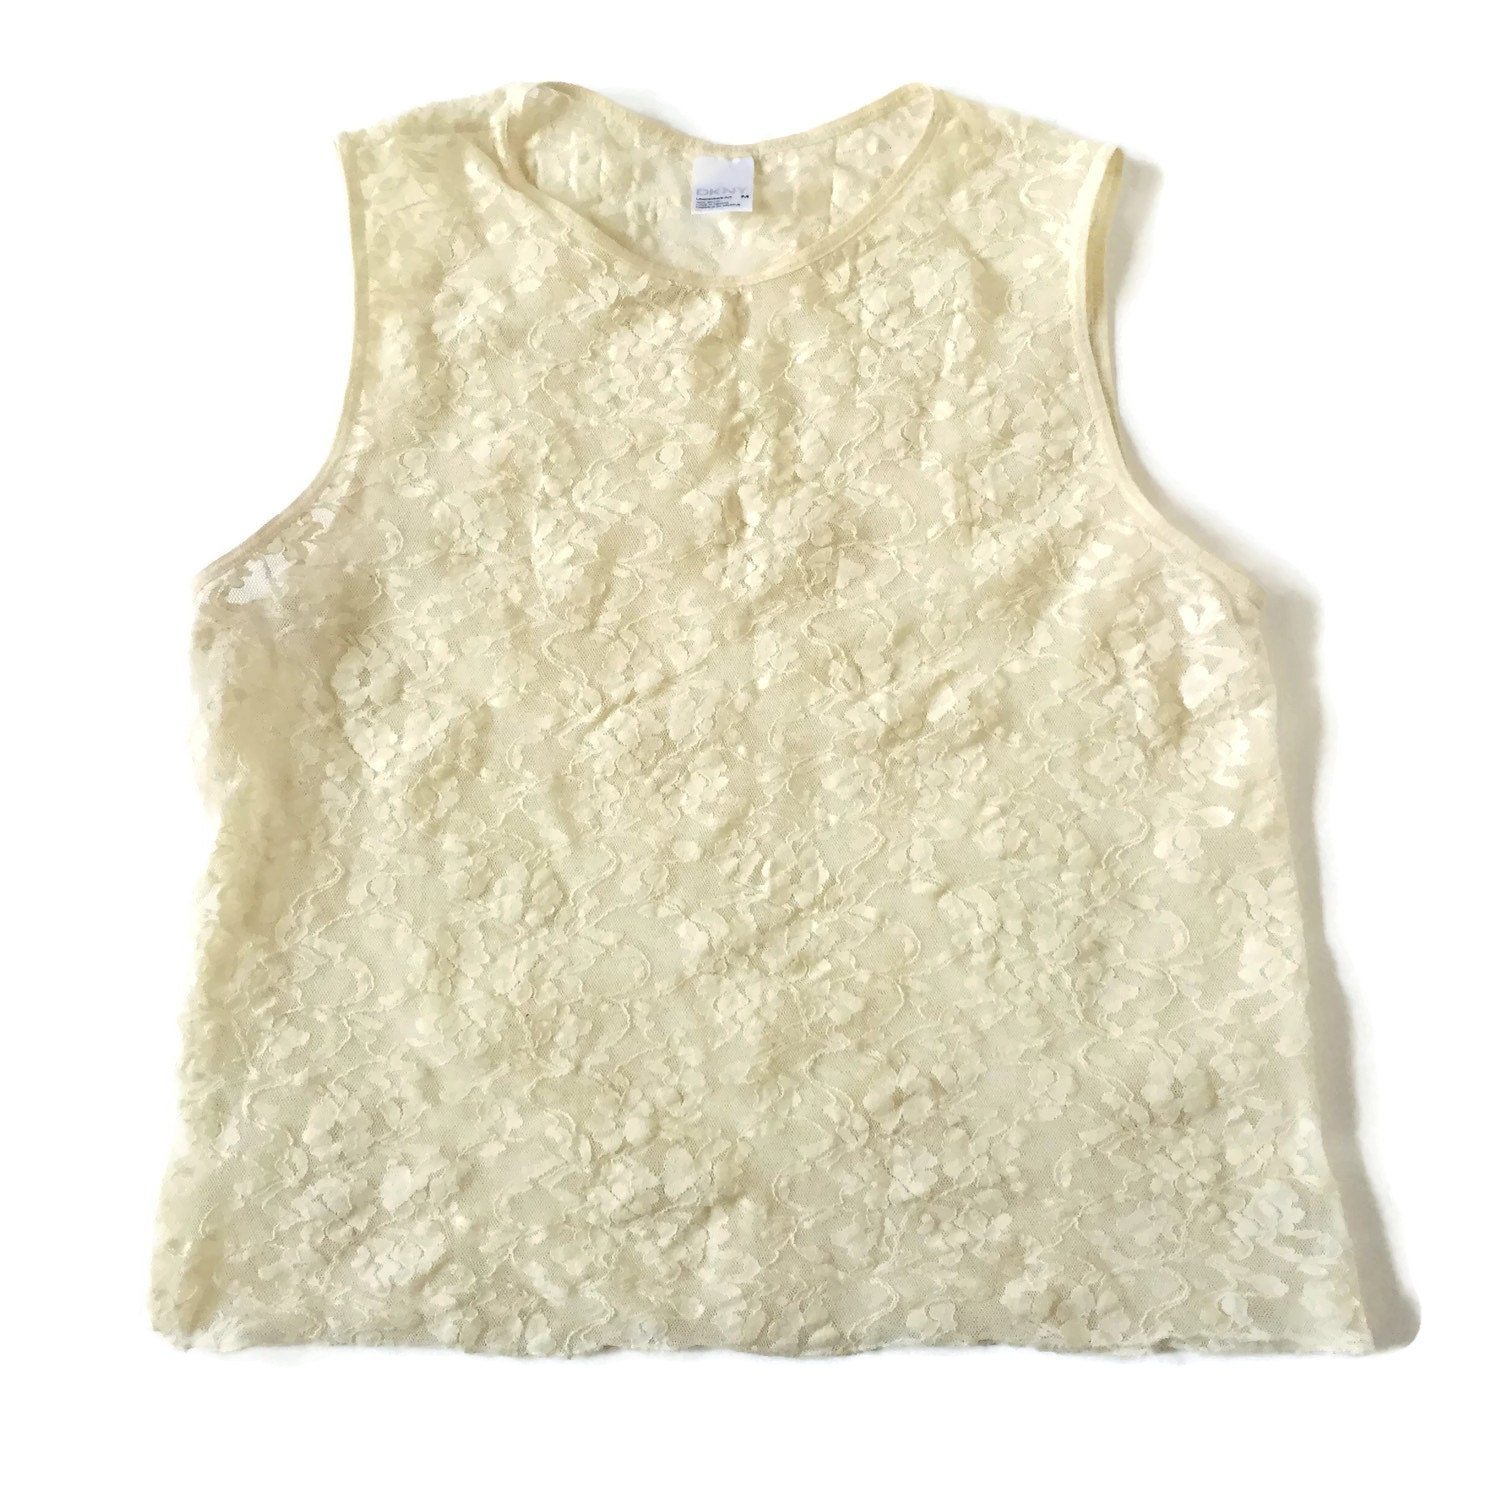 Find great deals on eBay for lace camis. Shop with confidence.